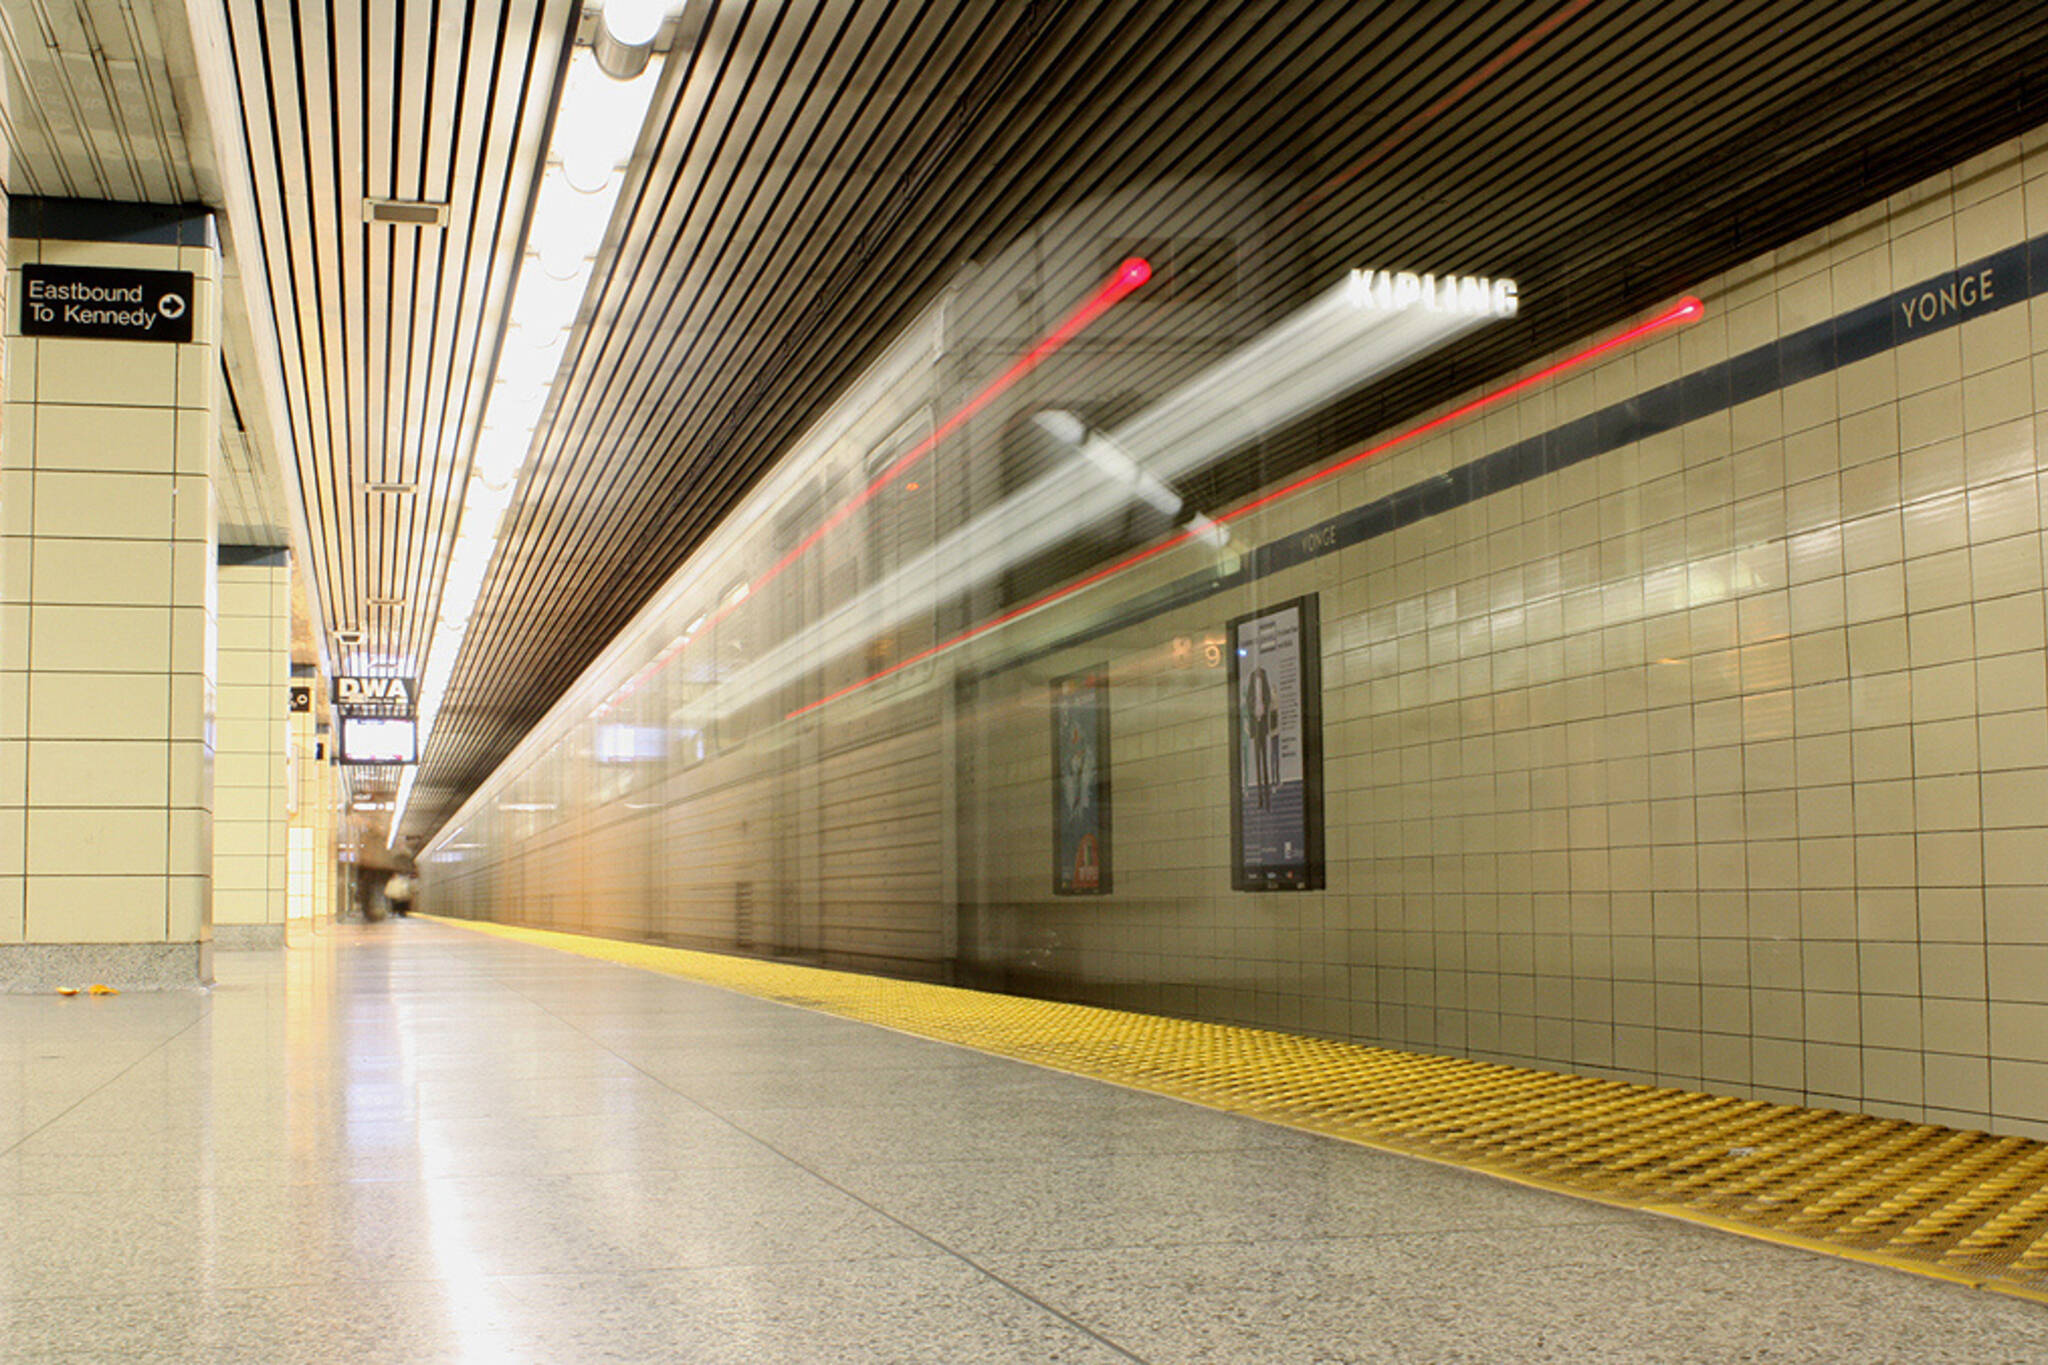 TTC Subway